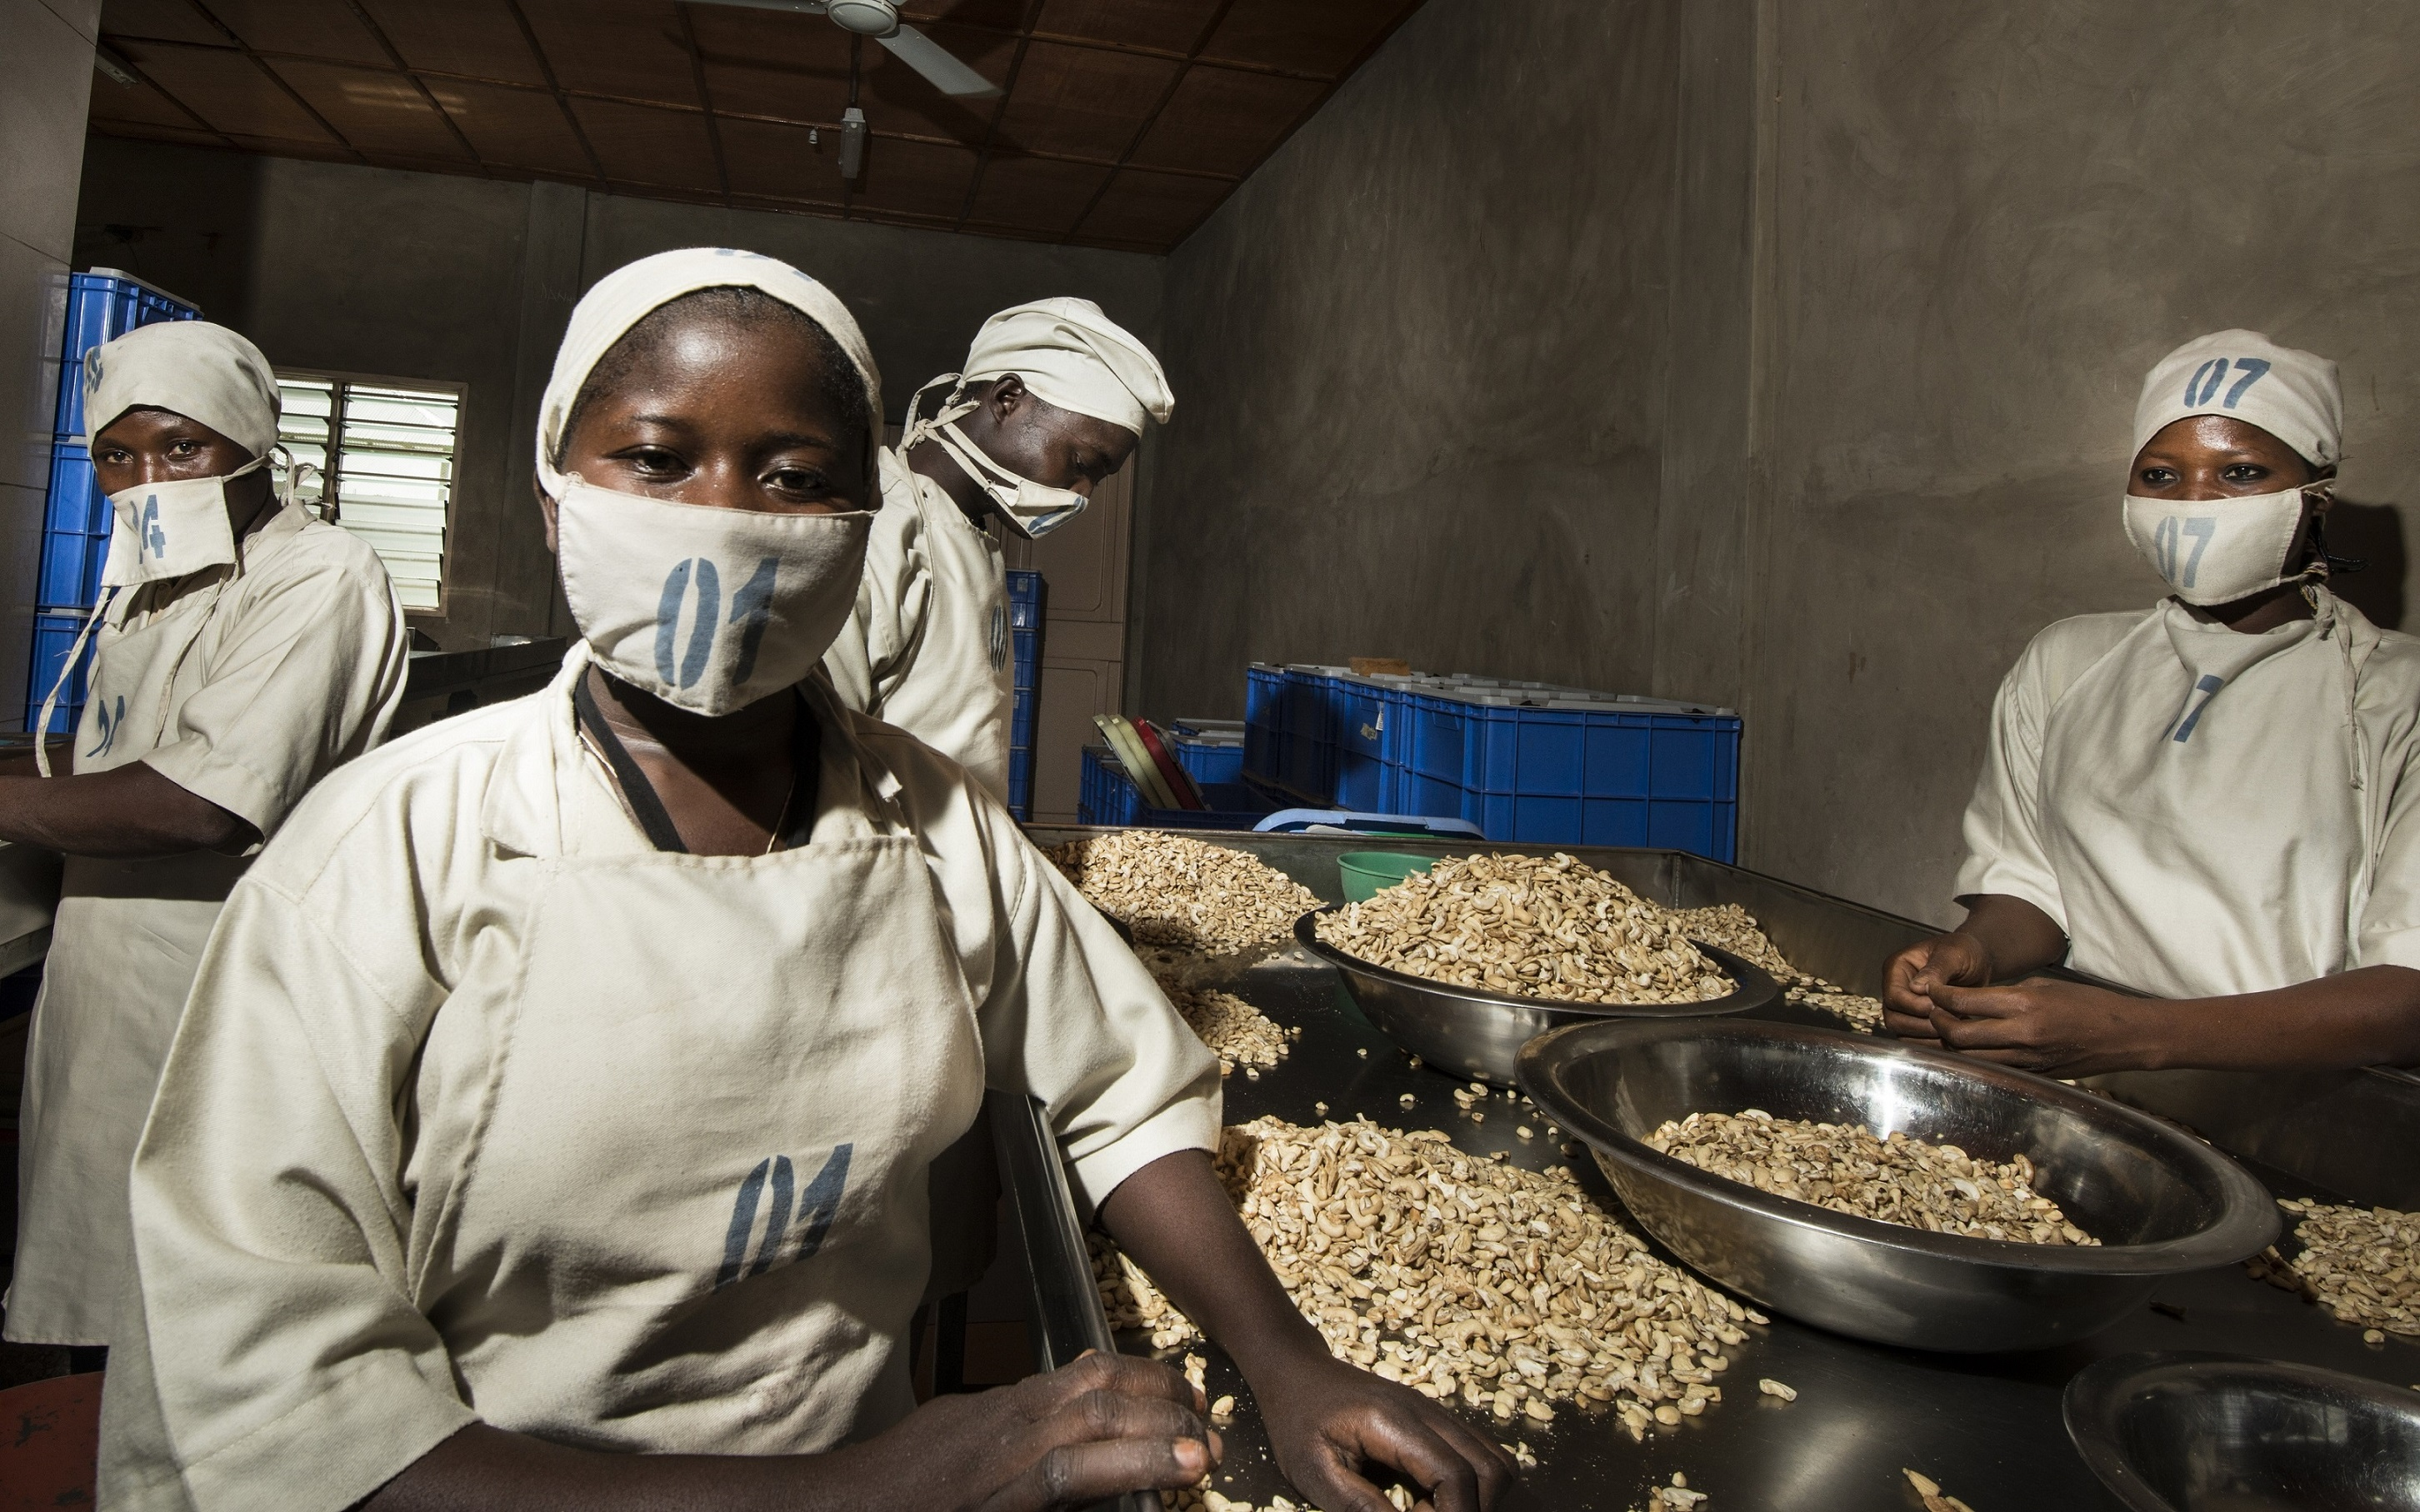 The covid-19 pandemic further highlights the vulnerability of global supply chains, such as cashew production in West Africa. © Michael Drexler, GIZ